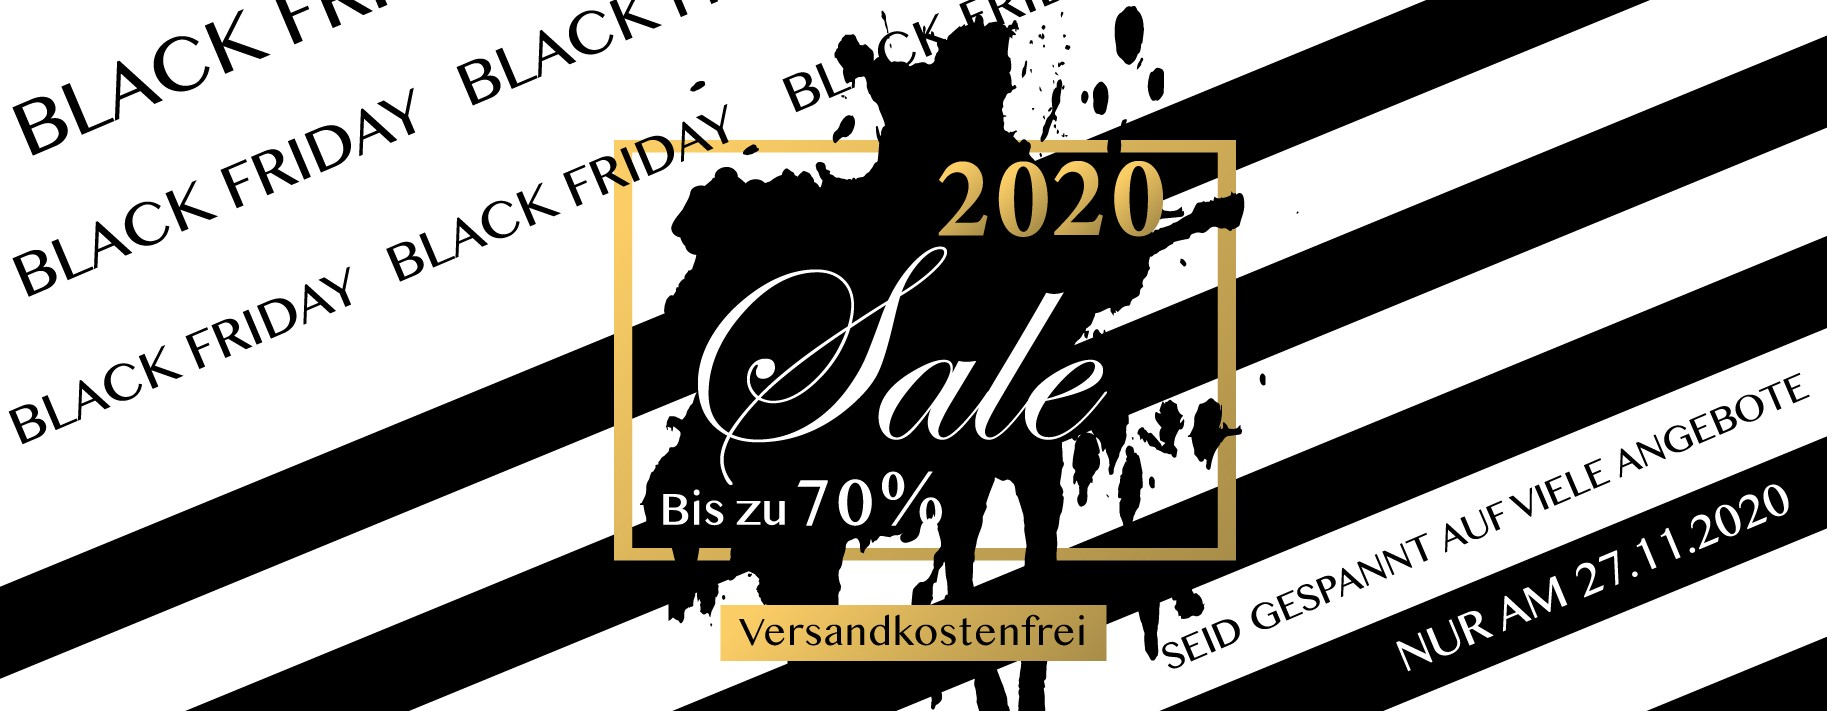 BlackFriday2020